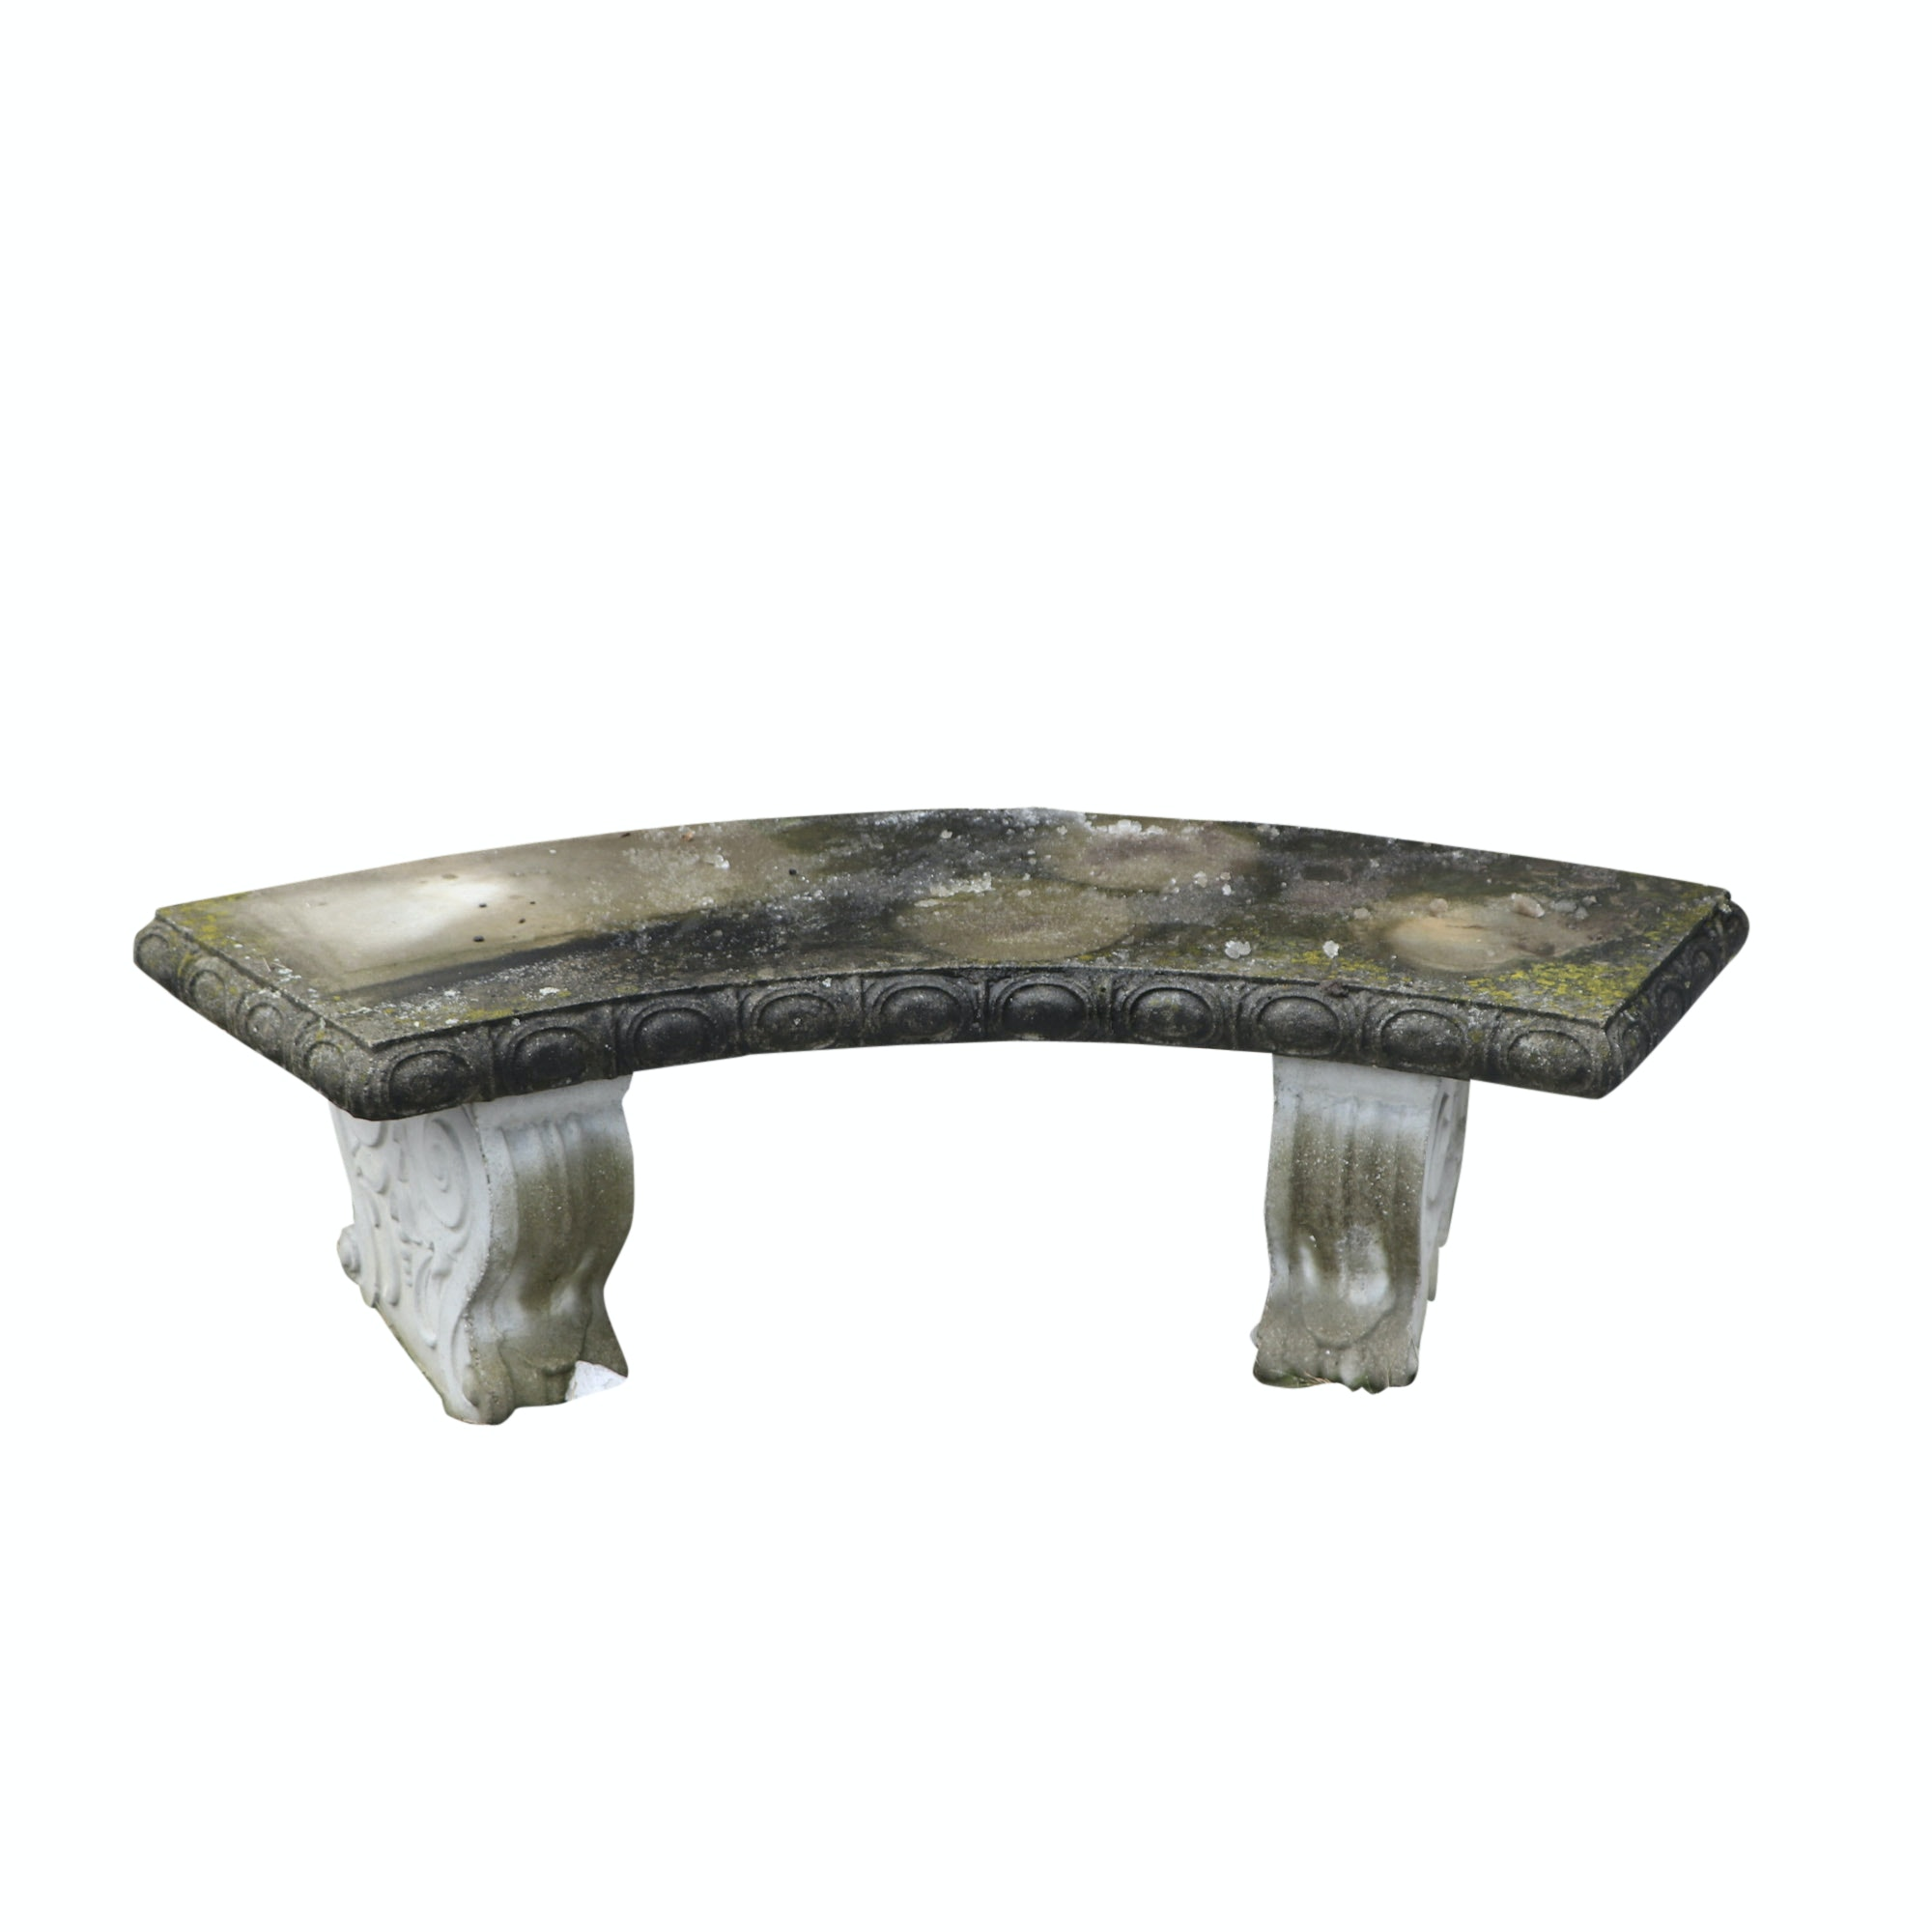 Cast Concrete Garden Bench